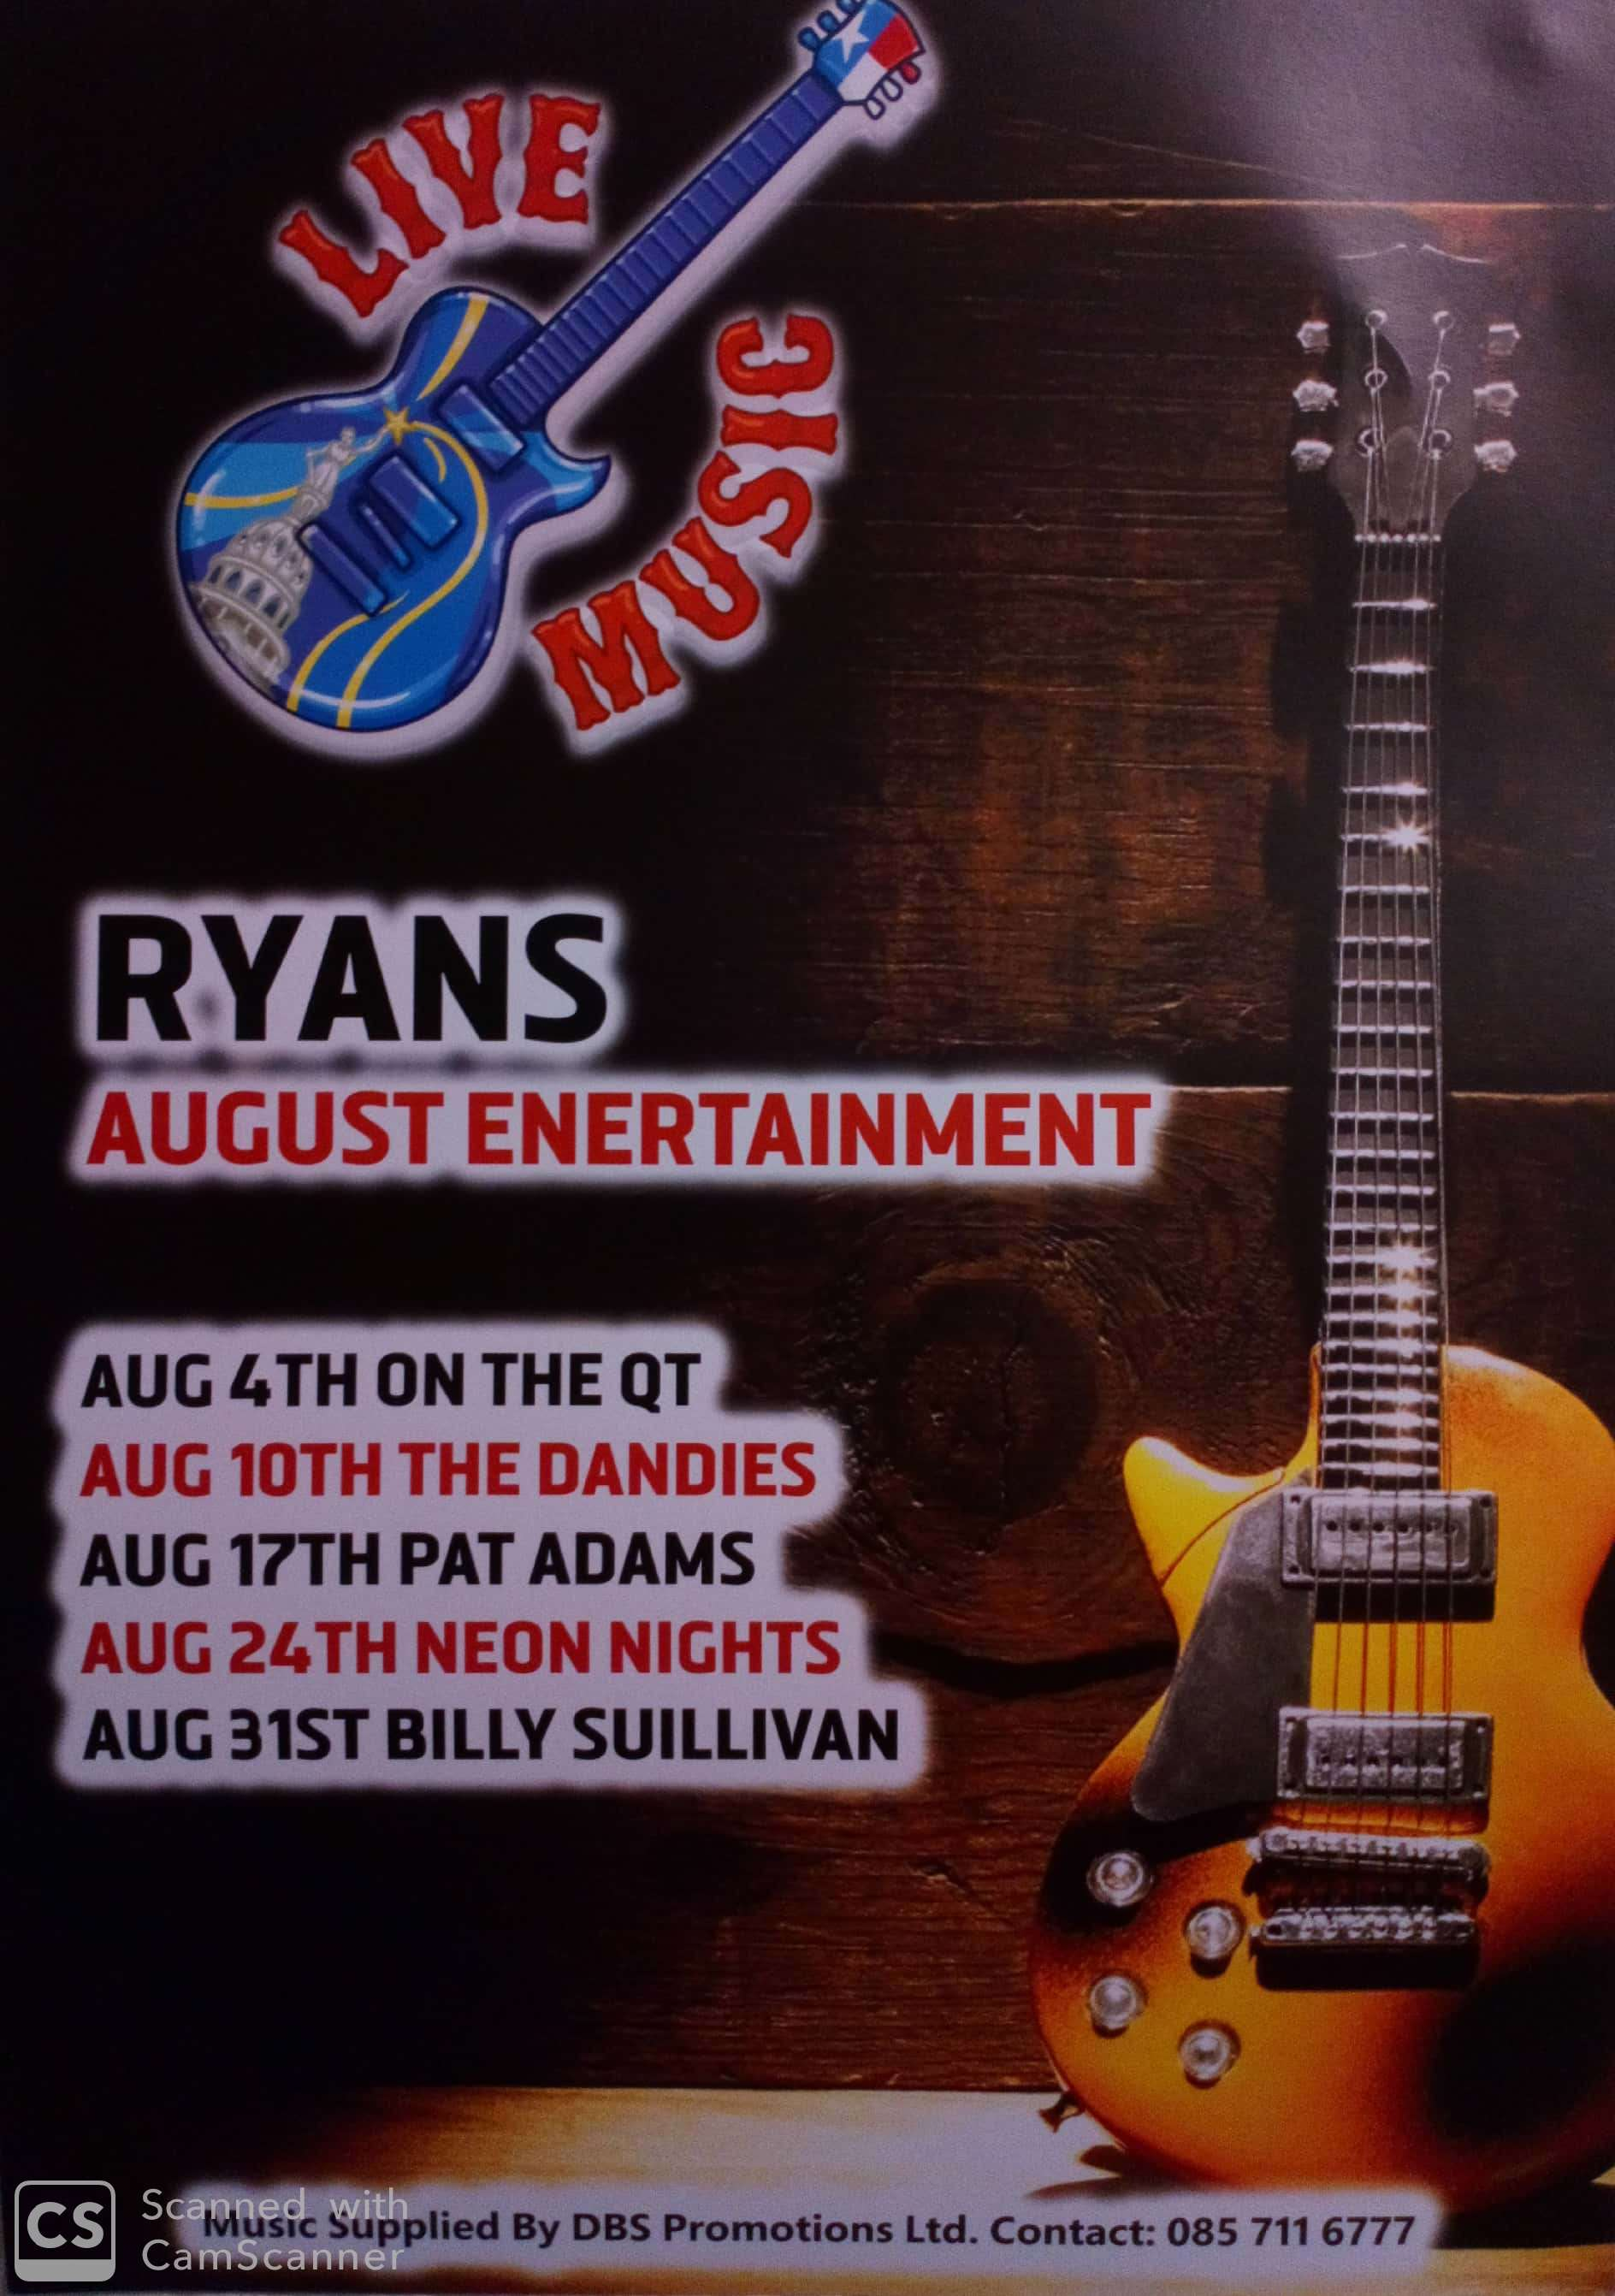 4th August - On the QT, 10th August - The Dandies , 17th August- Pat Adams, 24th August- Neon Nights, 31st August Billy Sullivan.